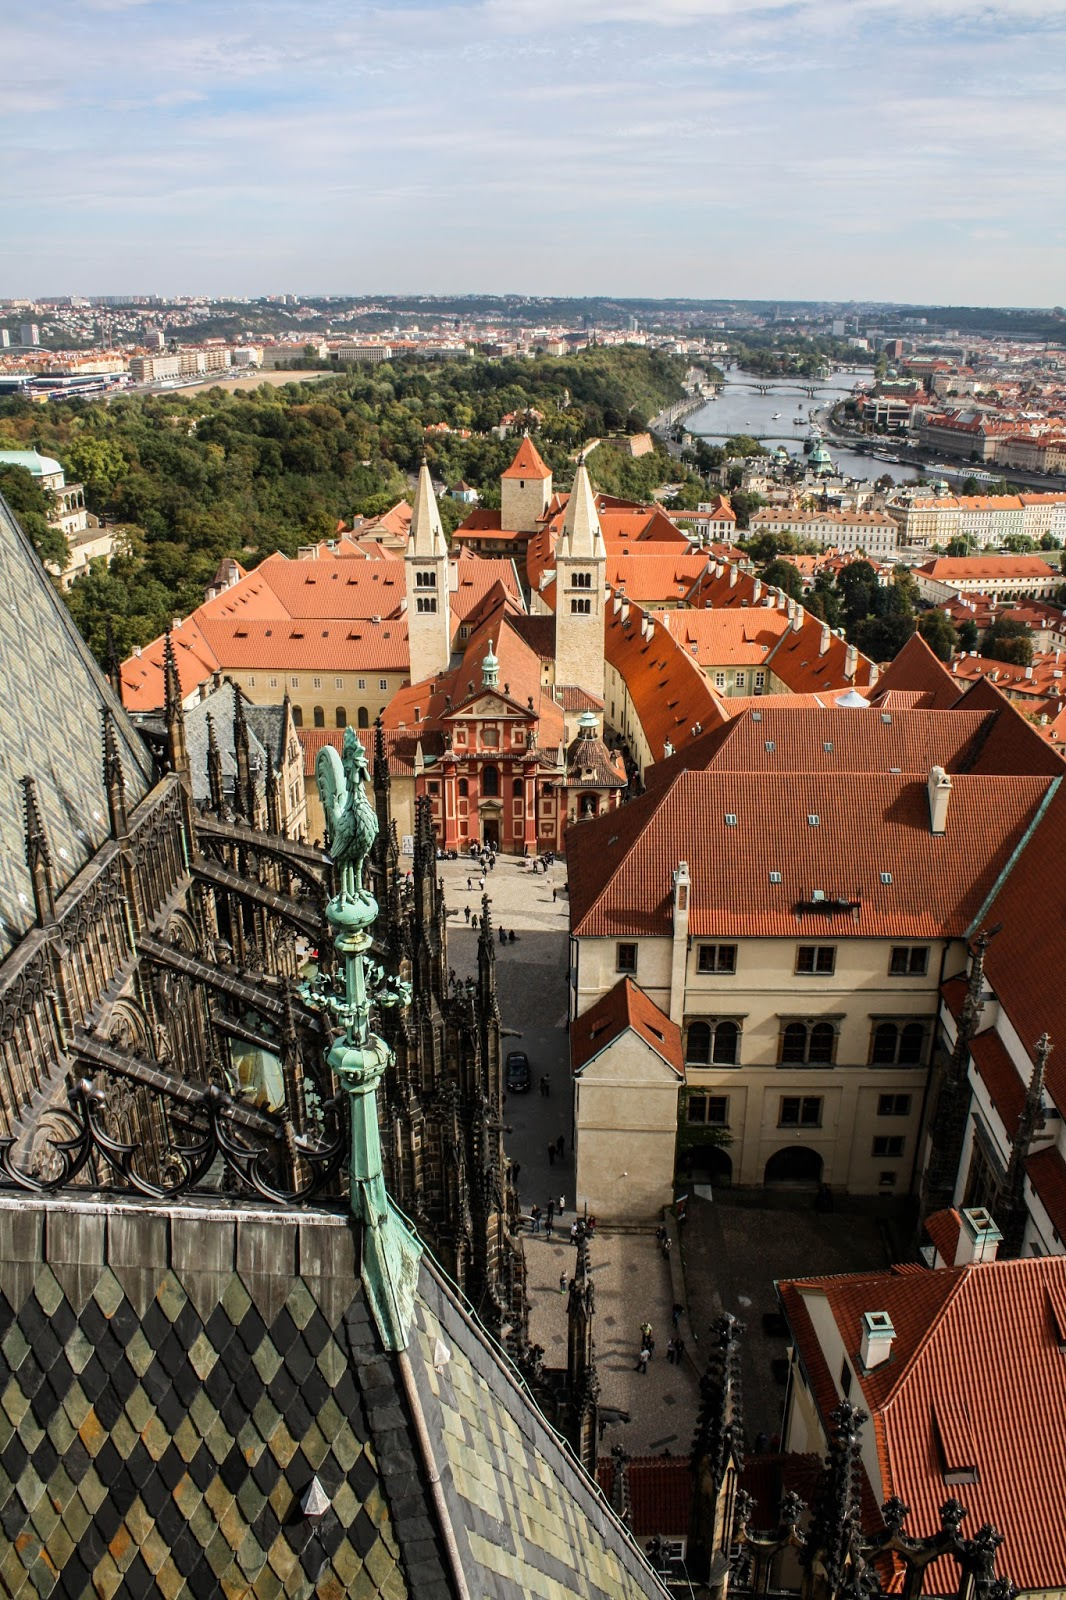 10 places in czech republic i u0026 39 d visit if i won the lottery